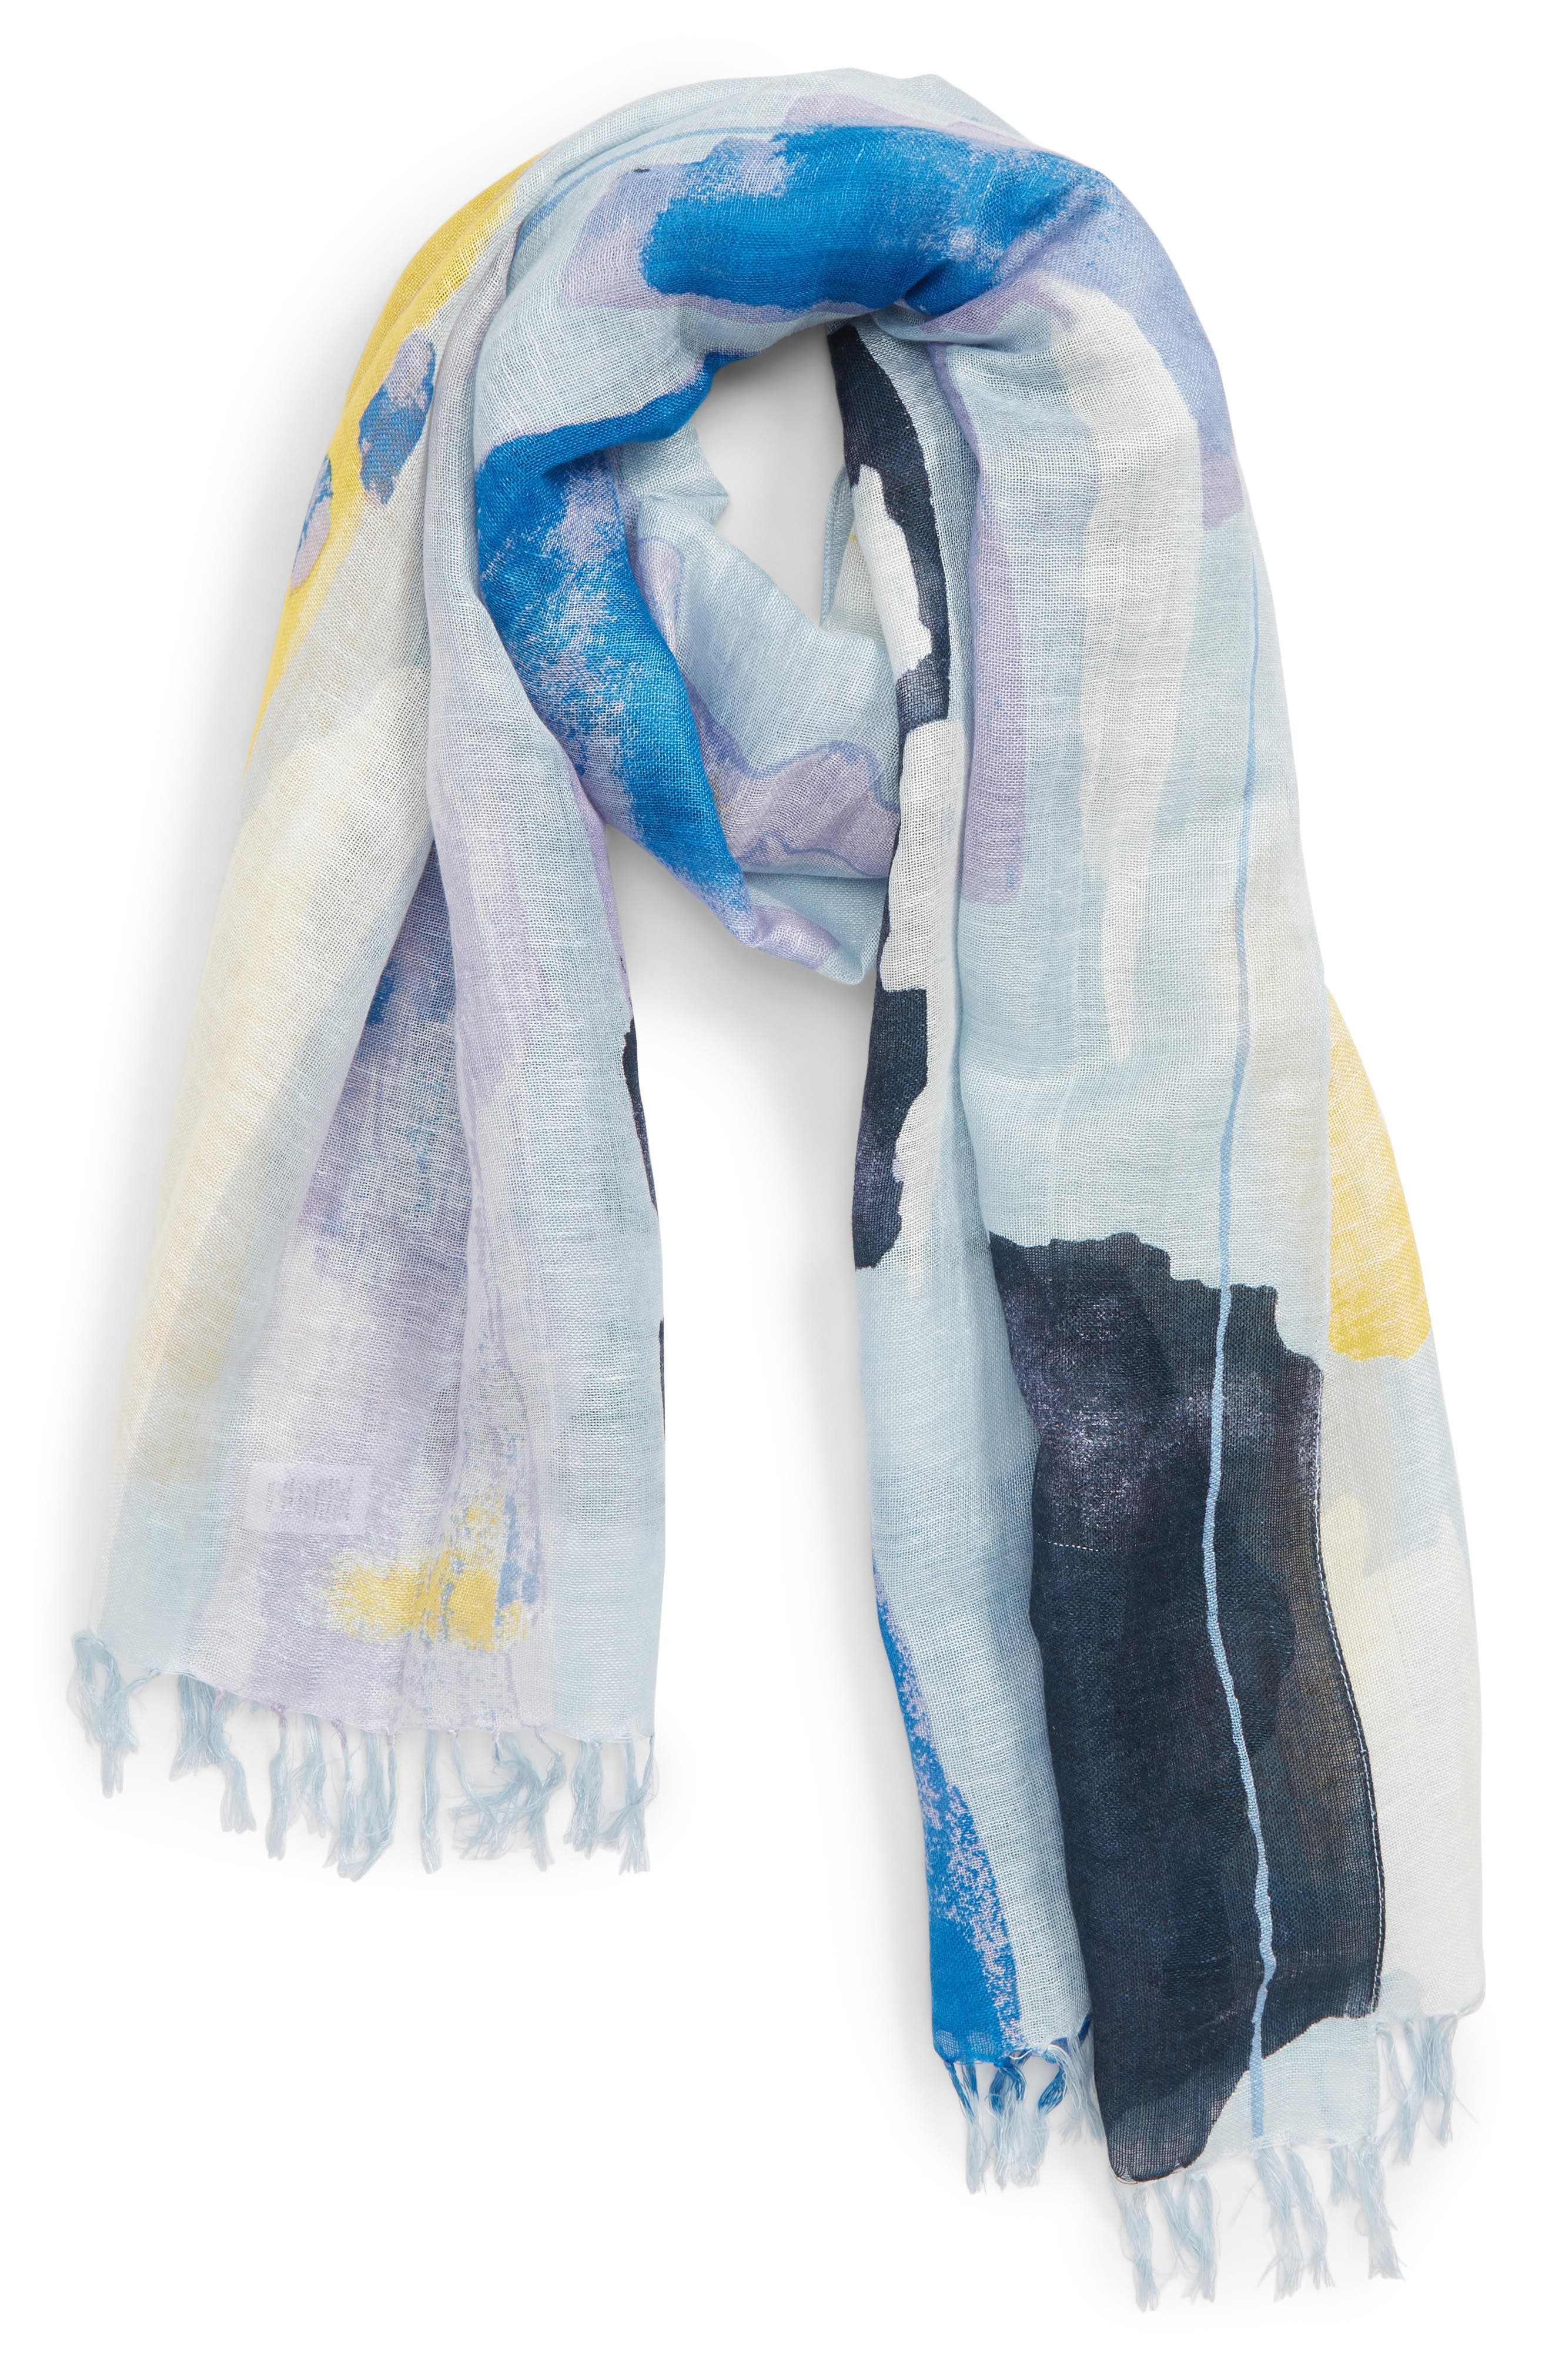 NORDSTROM, Painted Linen Blend Scarf, Alternate thumbnail 2, color, BLUE PAINT PLAY